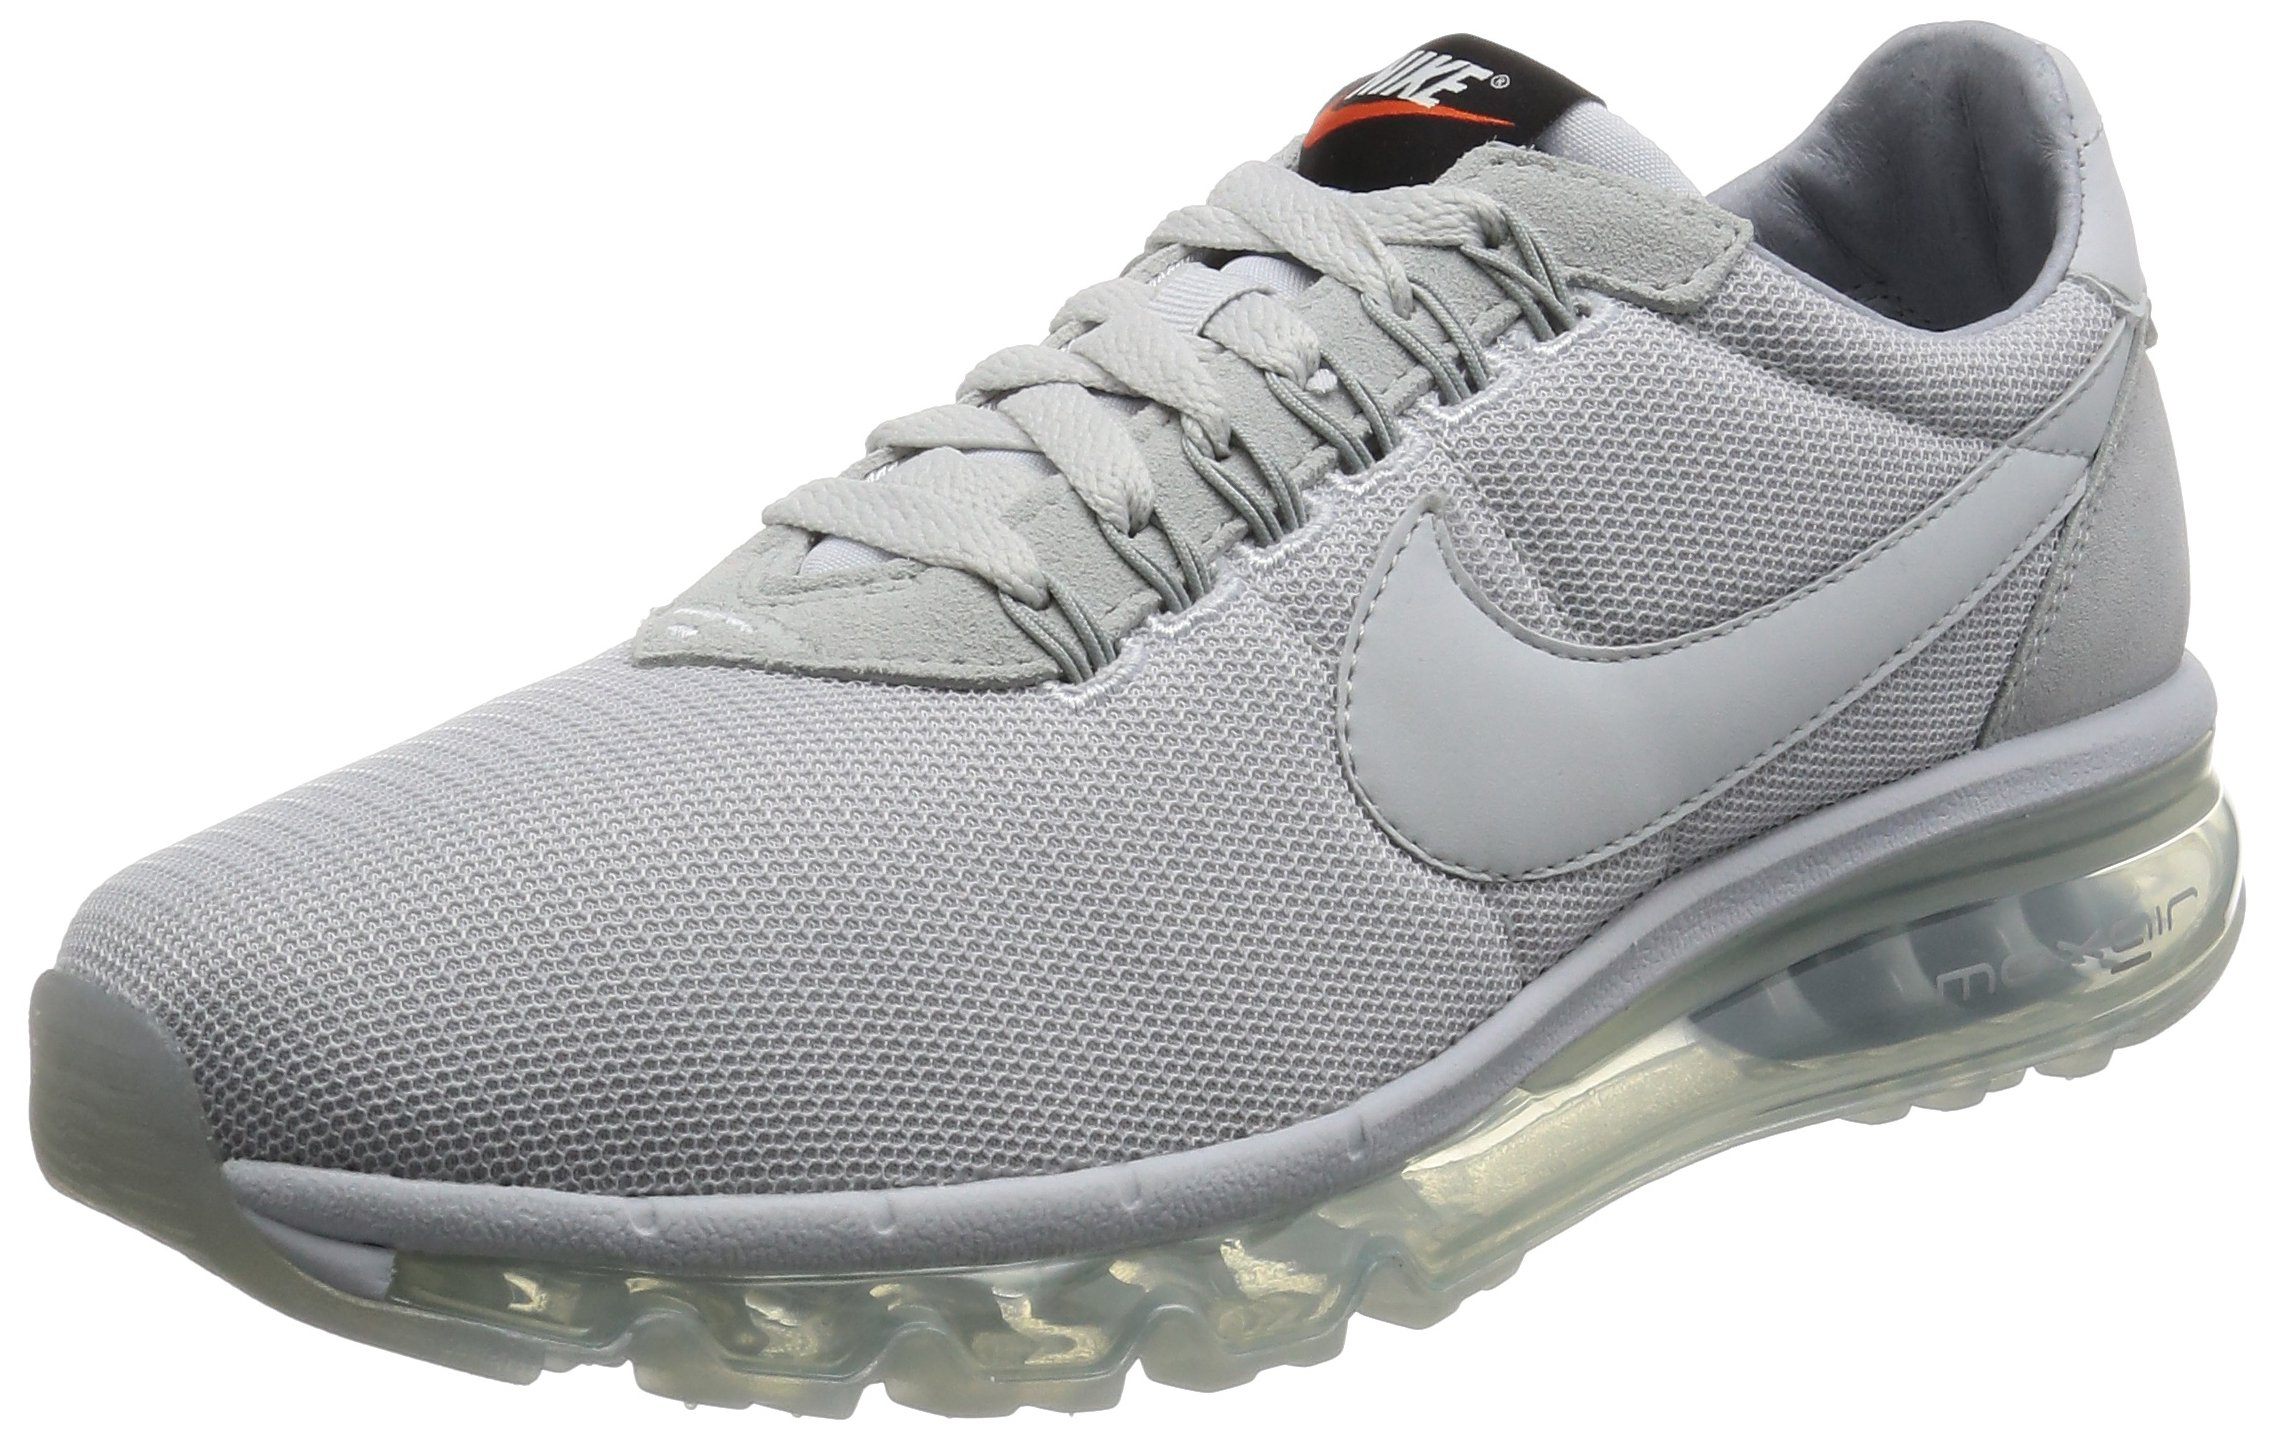 6705c266b7e Galleon - Nike AIR MAX LD-ZERO Mens Fashion-sneakers 848624-004 8.5 - PURE  PLATINUM PURE PLATINUM-COOL GREY